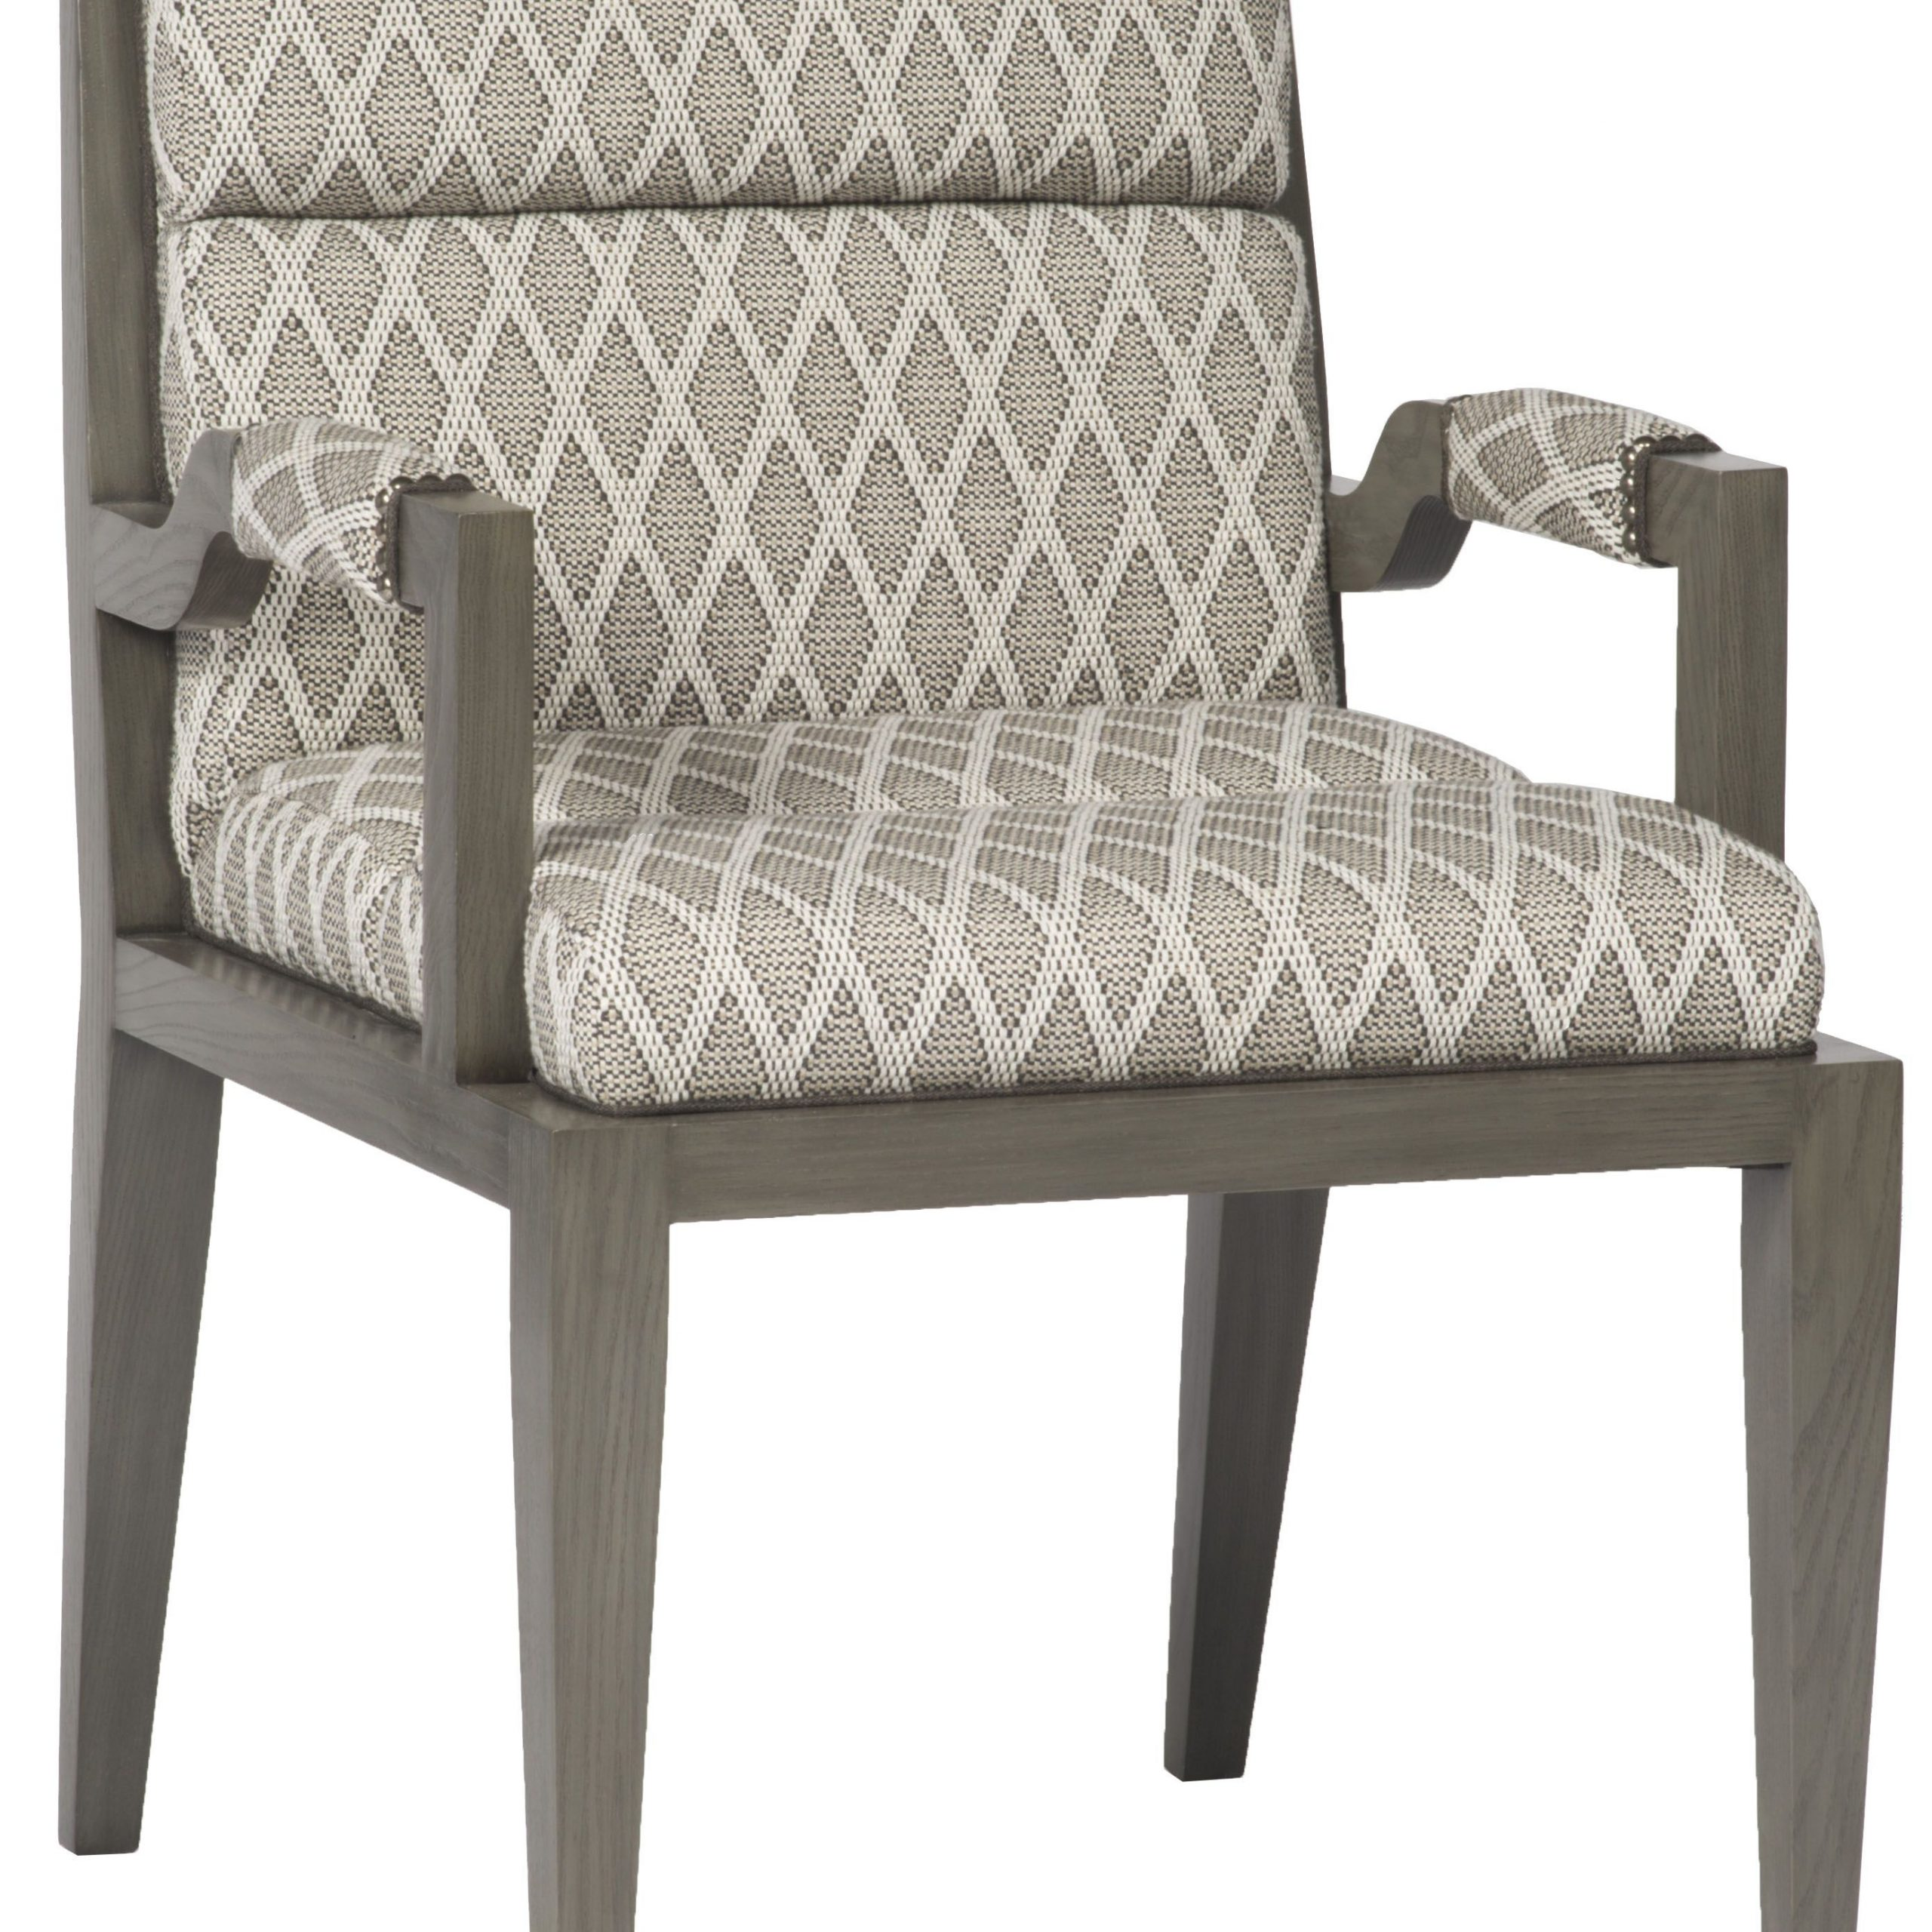 Armory Square Arm Chair 9712A | Vanguard Furniture With Armory Fabric Armchairs (View 3 of 15)